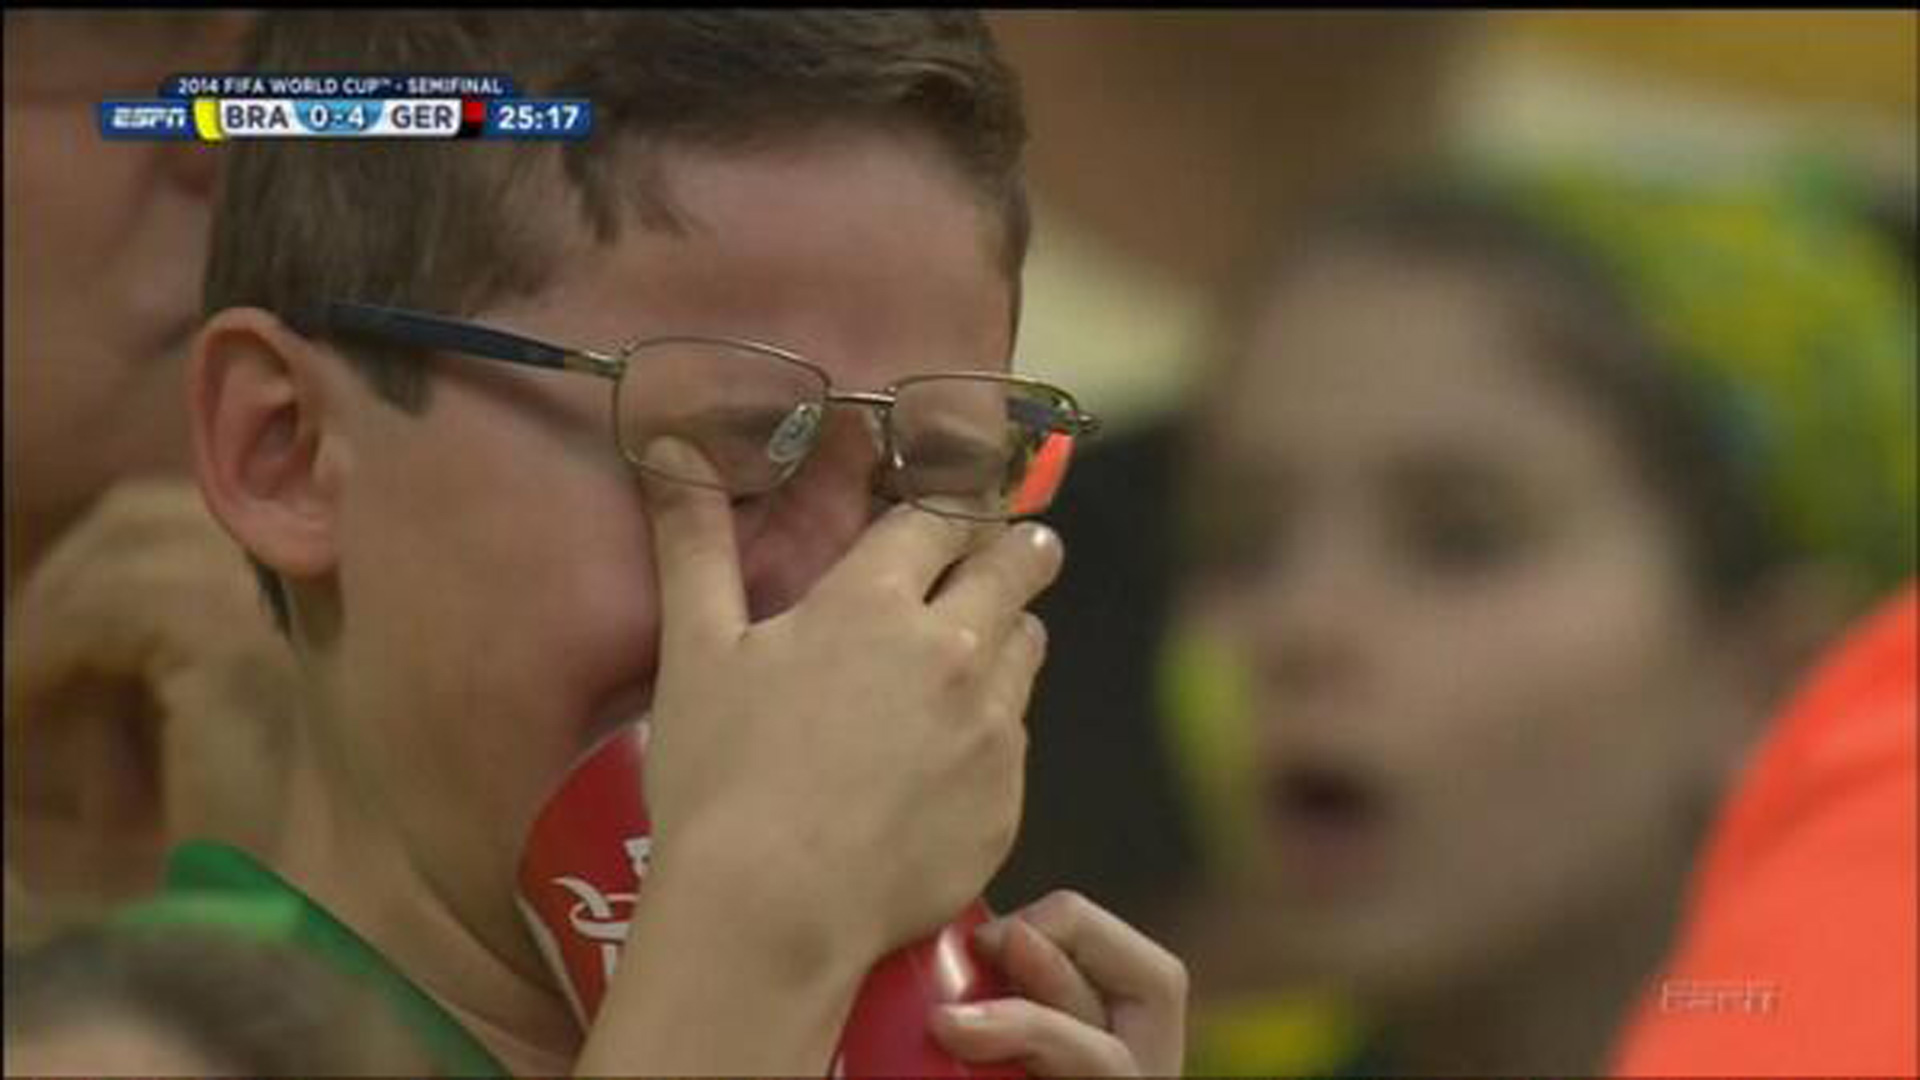 crying-brazil-kid-070814-twitter-ftr